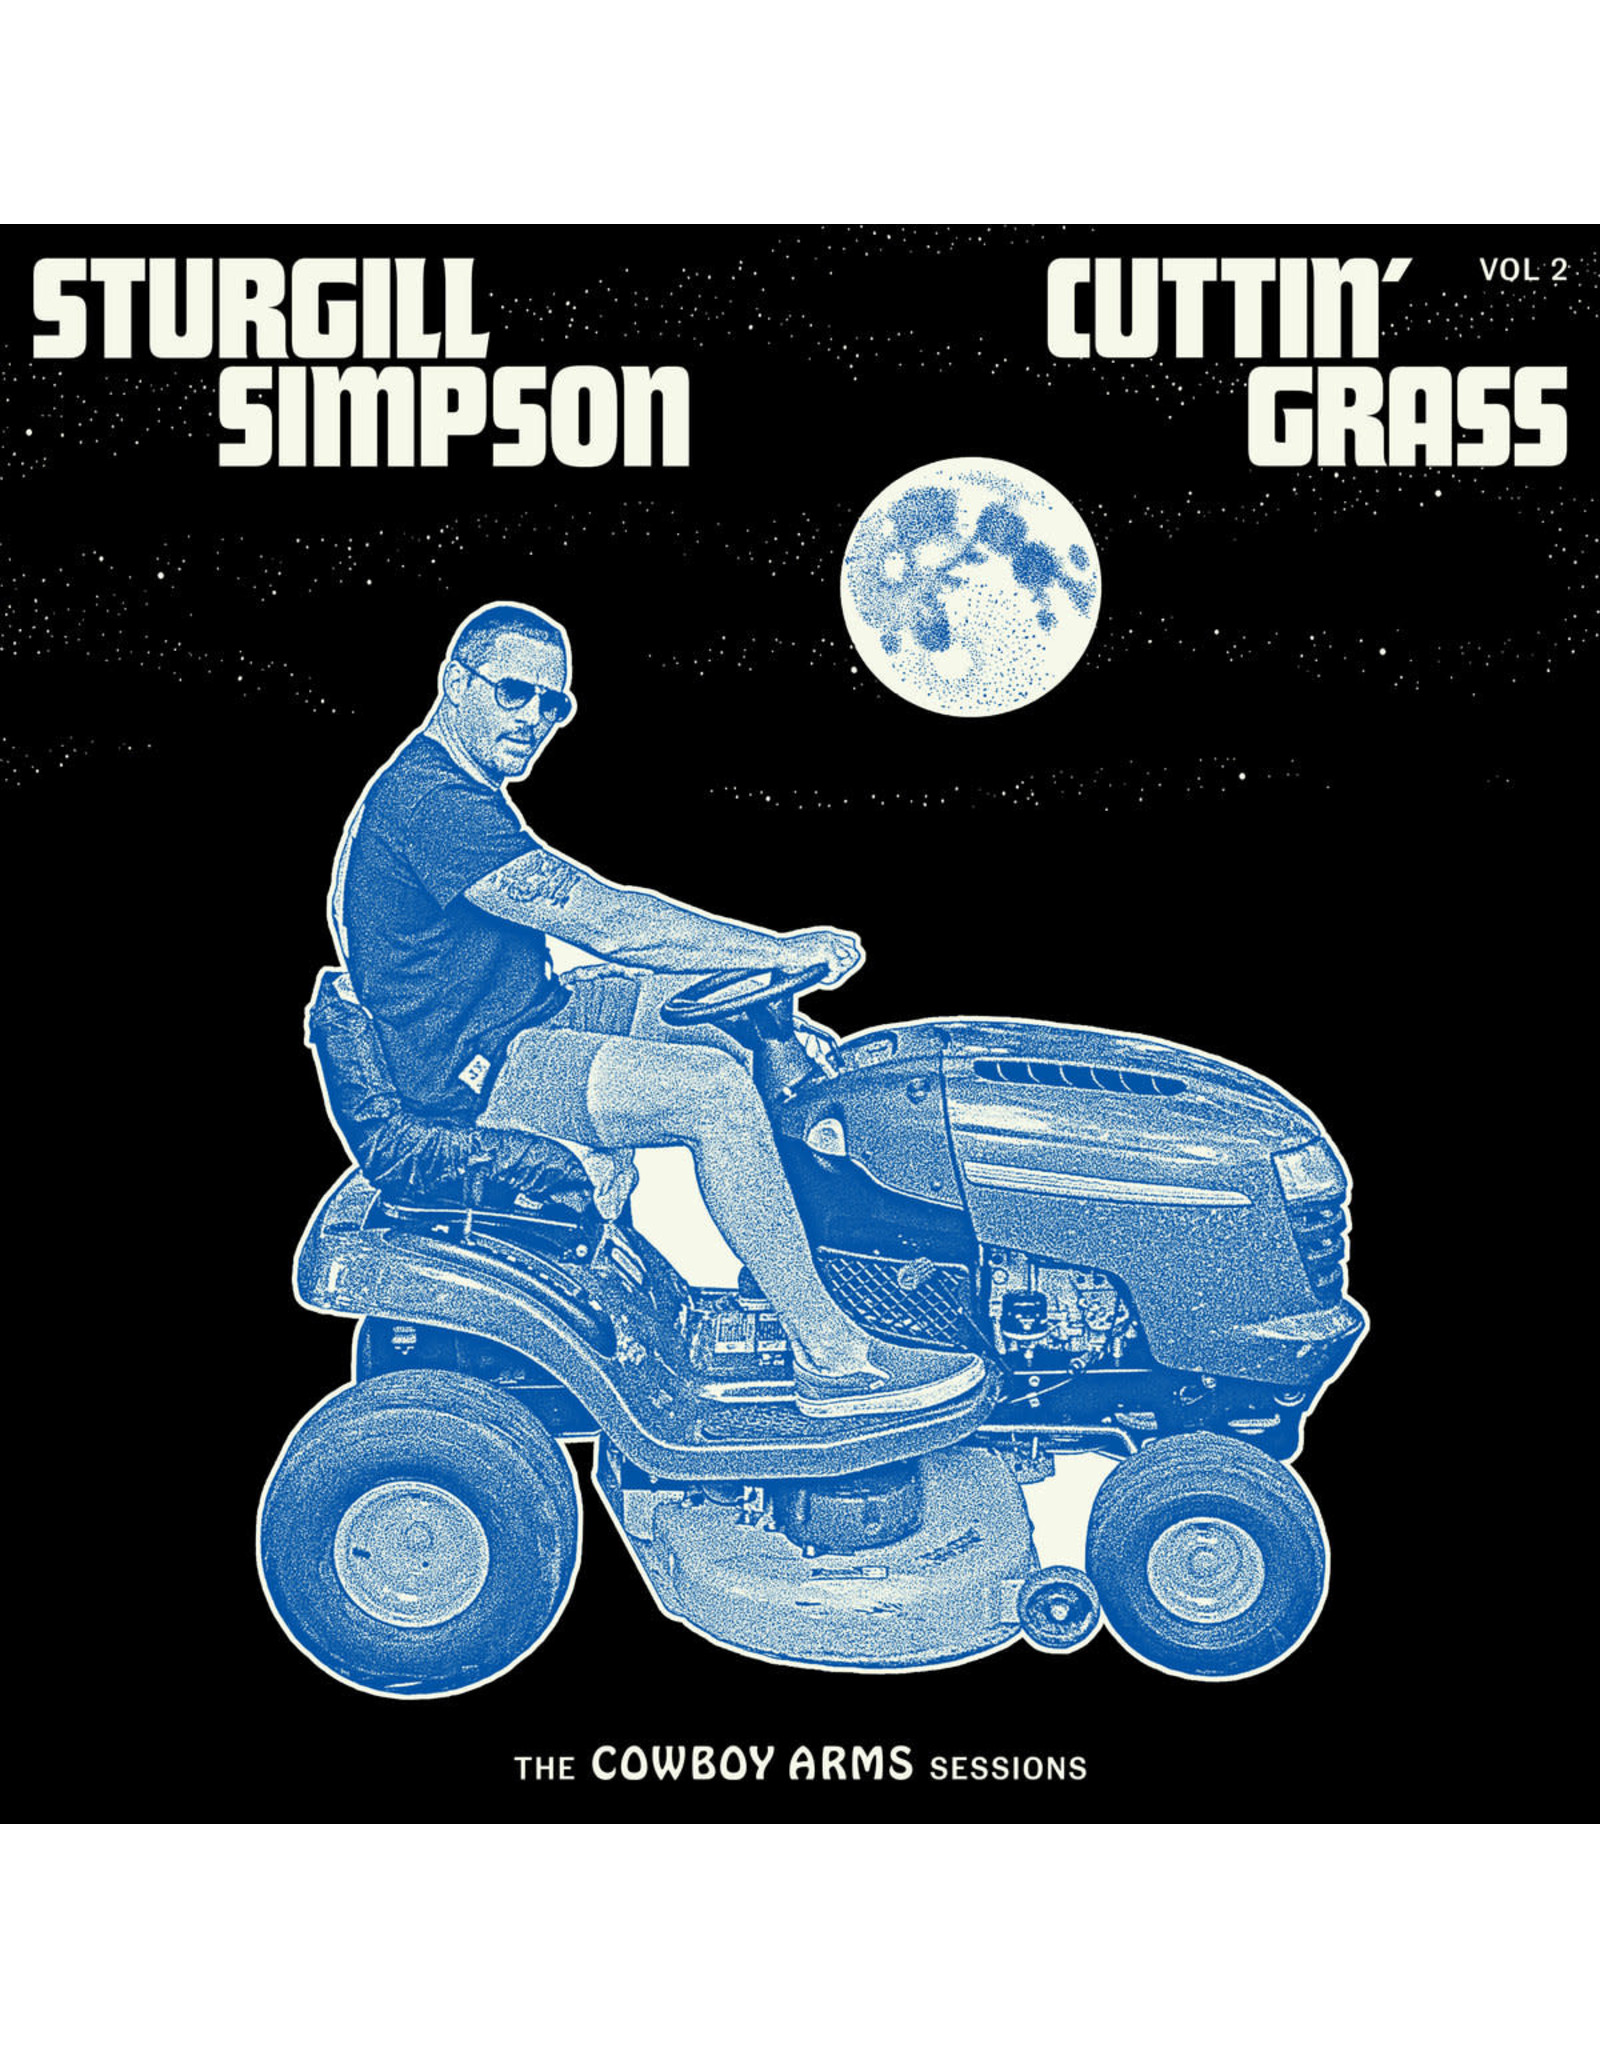 Simpson, Sturgill - Cuttin' Grass Vol. 2: The Cowboy Arms Sessions LP (Opaque Blue and White Swirl w/ Glow in the Dark Jacket)